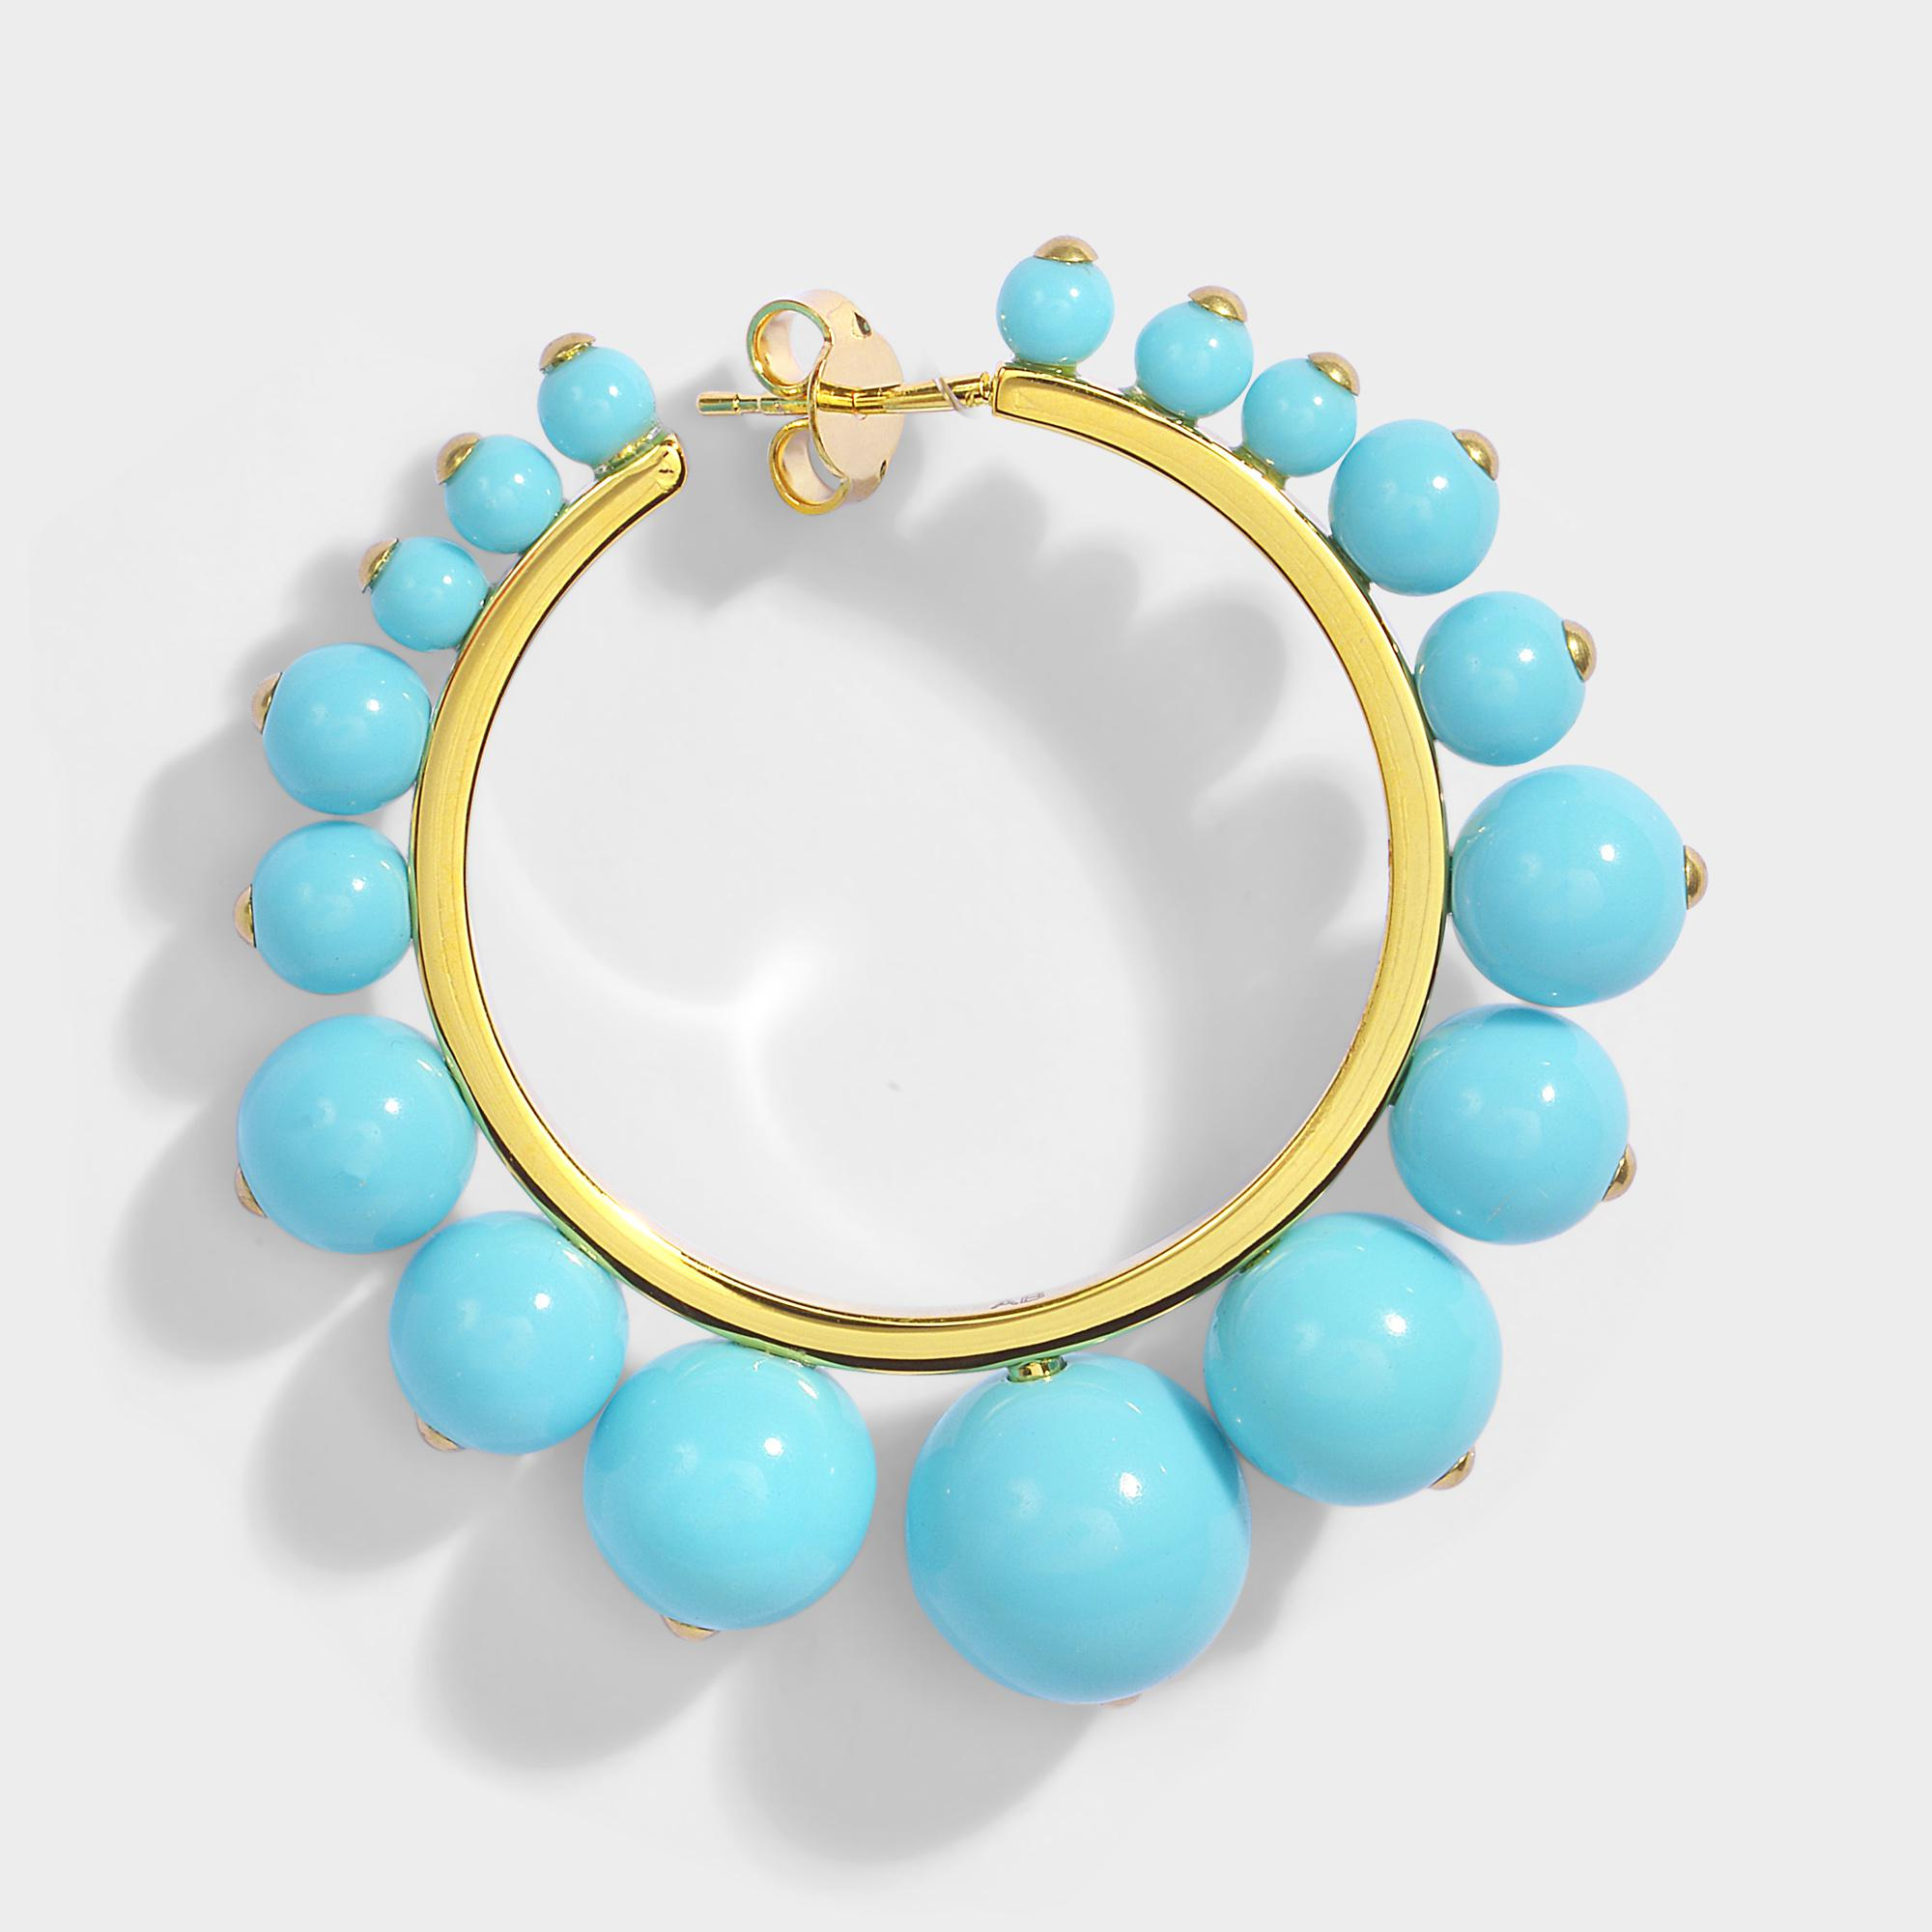 Aurélie Bidermann Ana Medium Earrings in Turquoise Color Pearls and 18K Gold-Plated Brass ossOcyOg